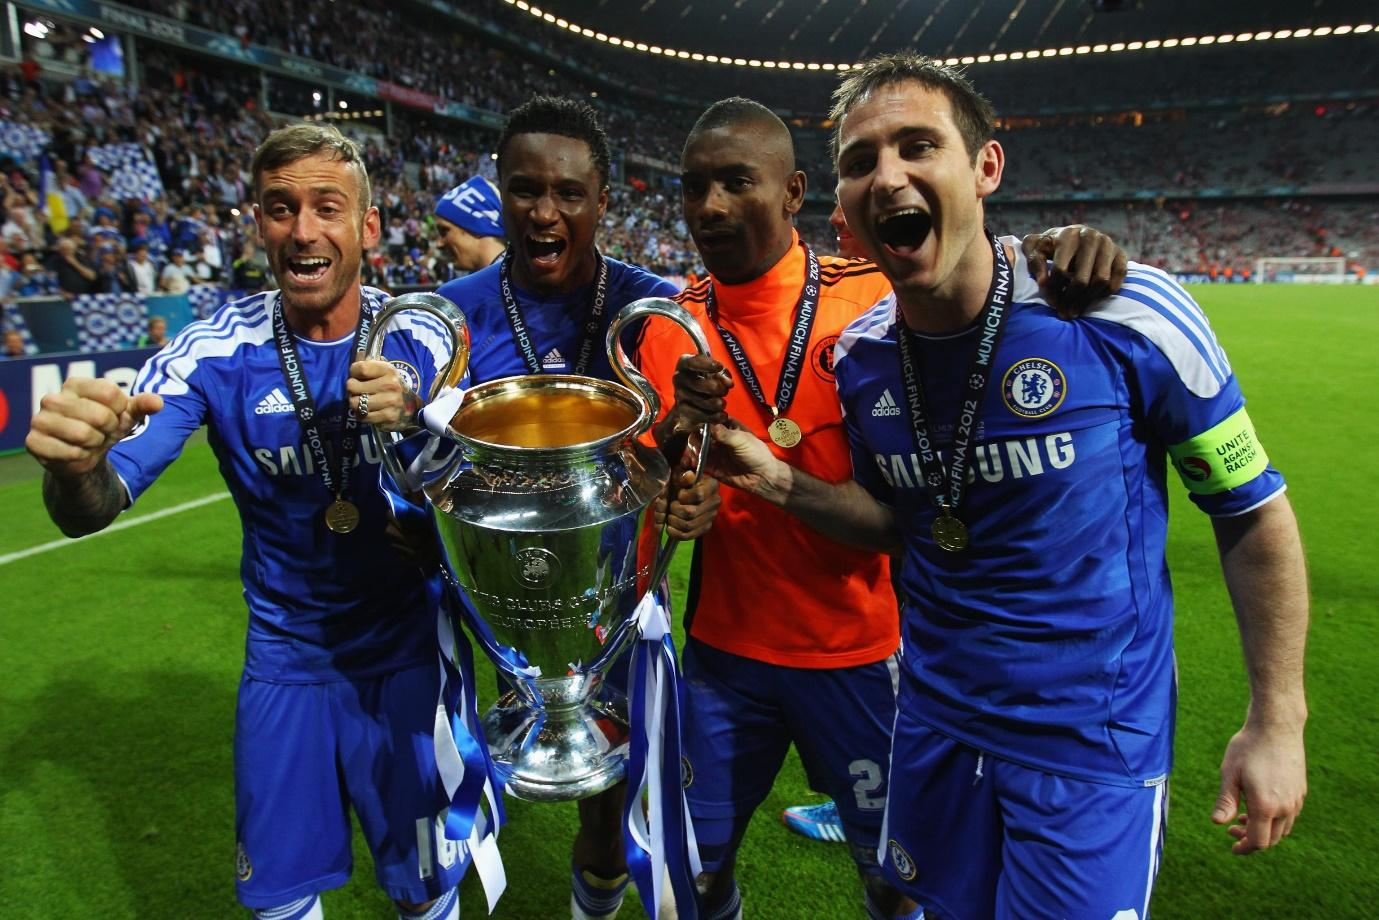 Chelsea Staff Damage UEFA Champions League Trophy   Bleacher Report    Latest News, Videos and Highlights